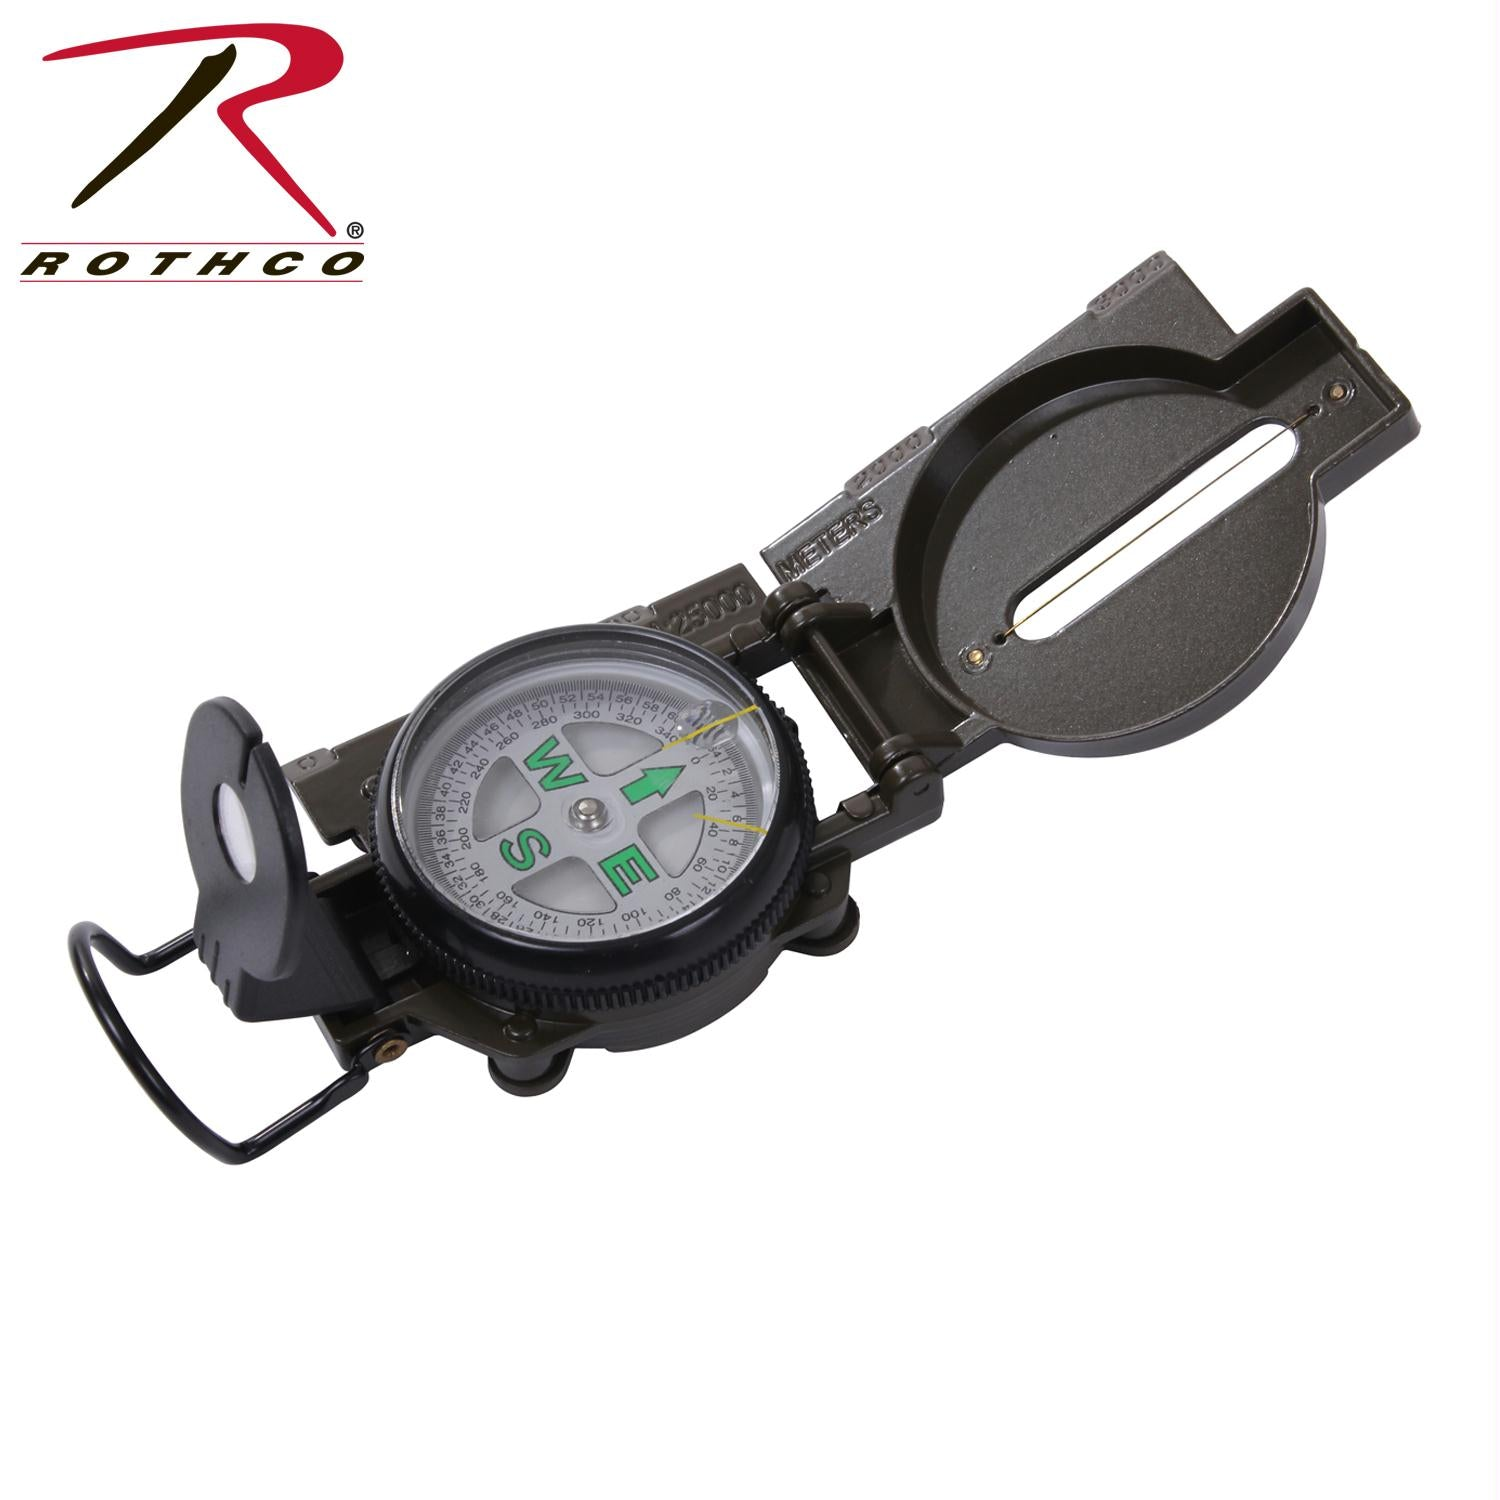 Rothco Military Marching Compass - Olive Drab